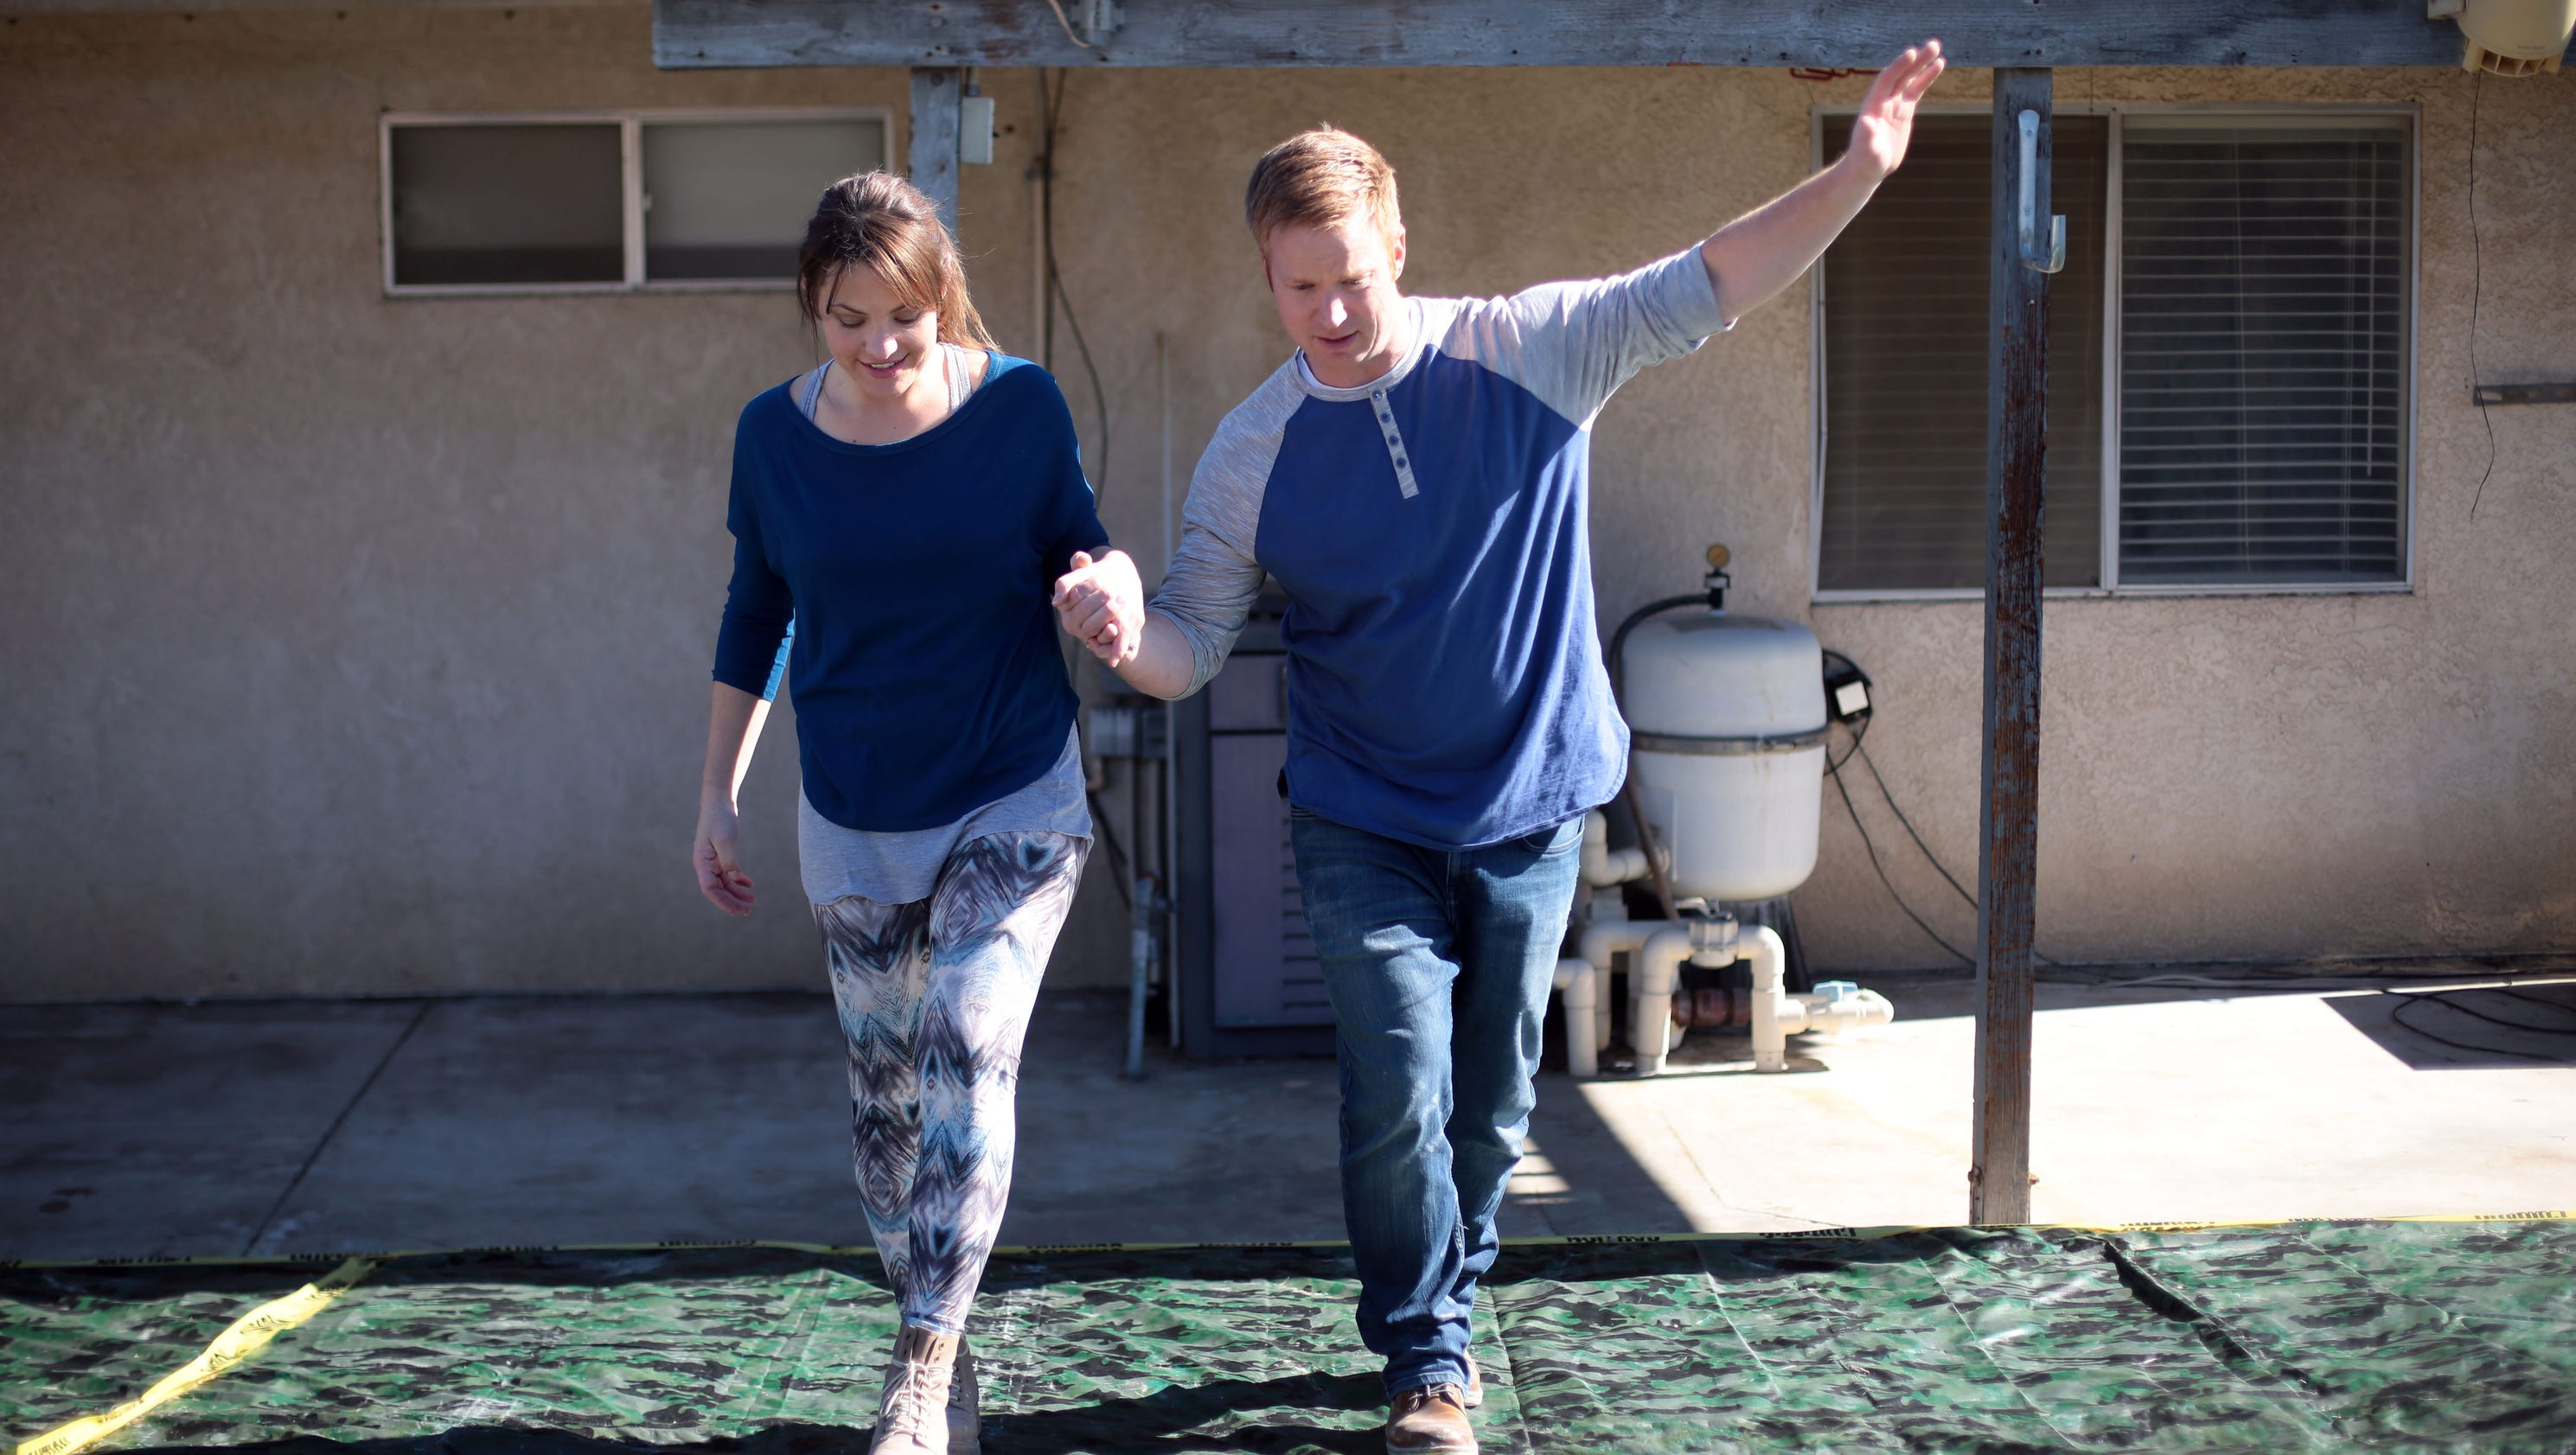 Hgtv 39 s 39 desert flippers 39 are back to flipping run down for 0 down homes